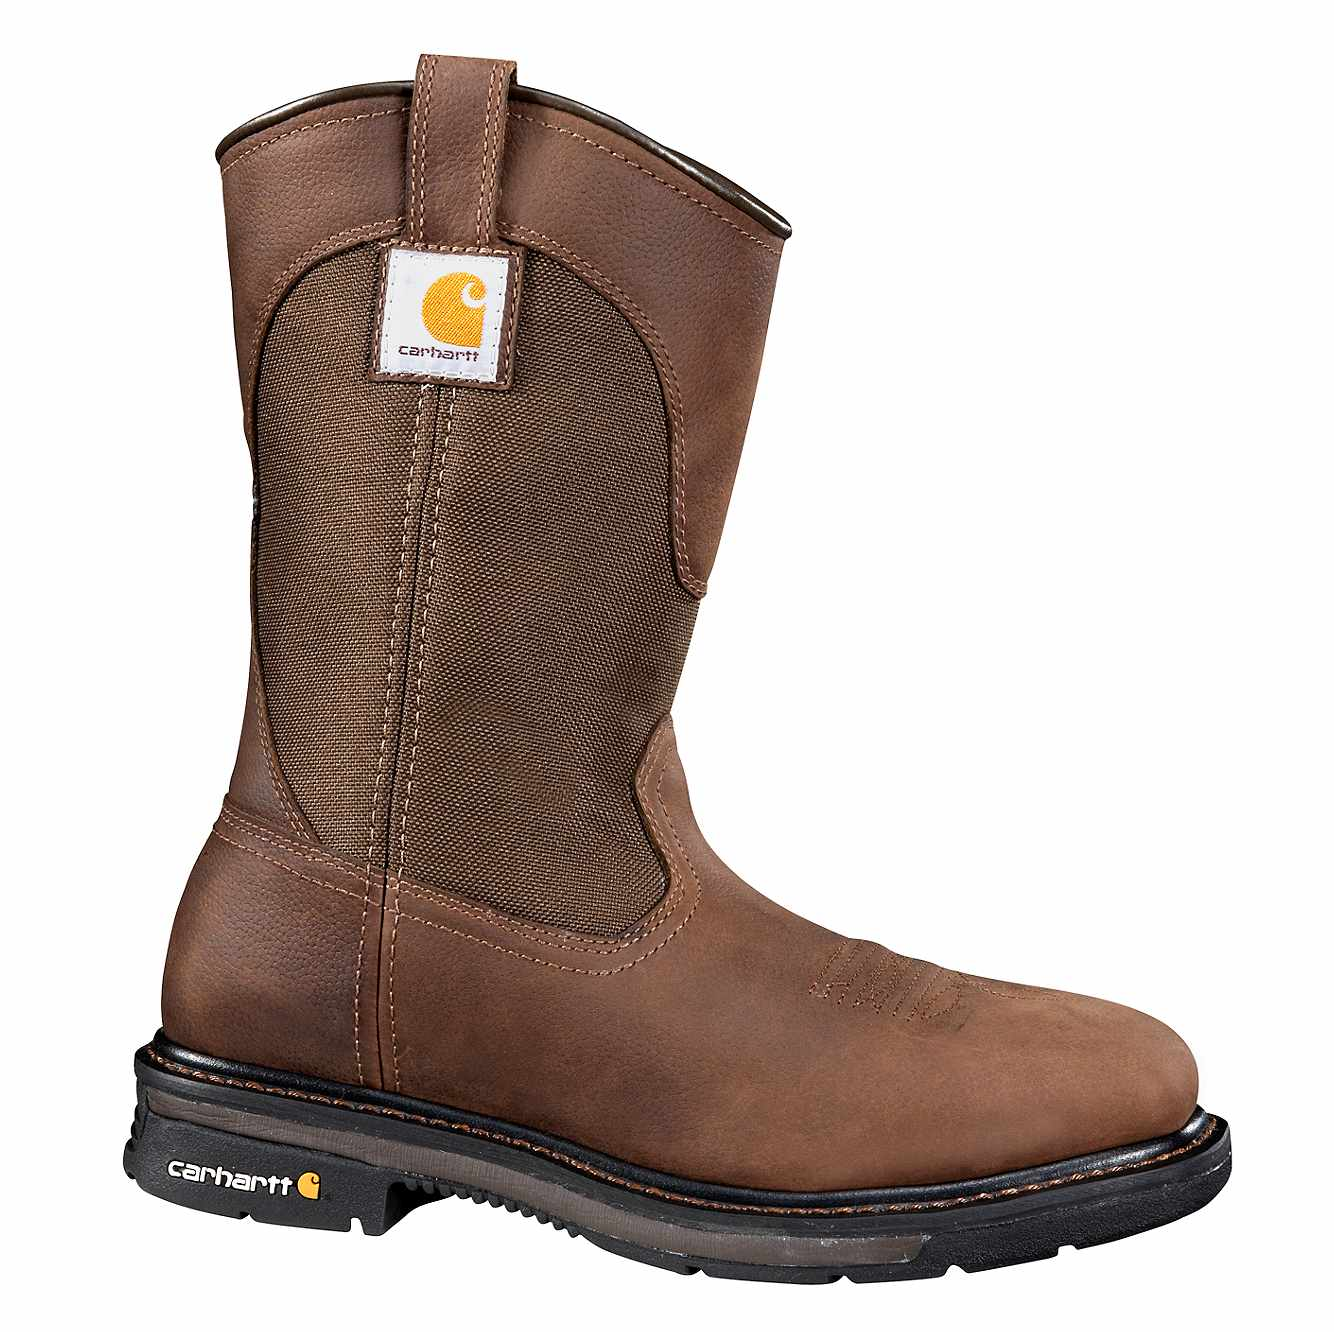 Picture of 11-Inch Square Steel Toe Wellington Boot in Dark Bison Oil Tanned